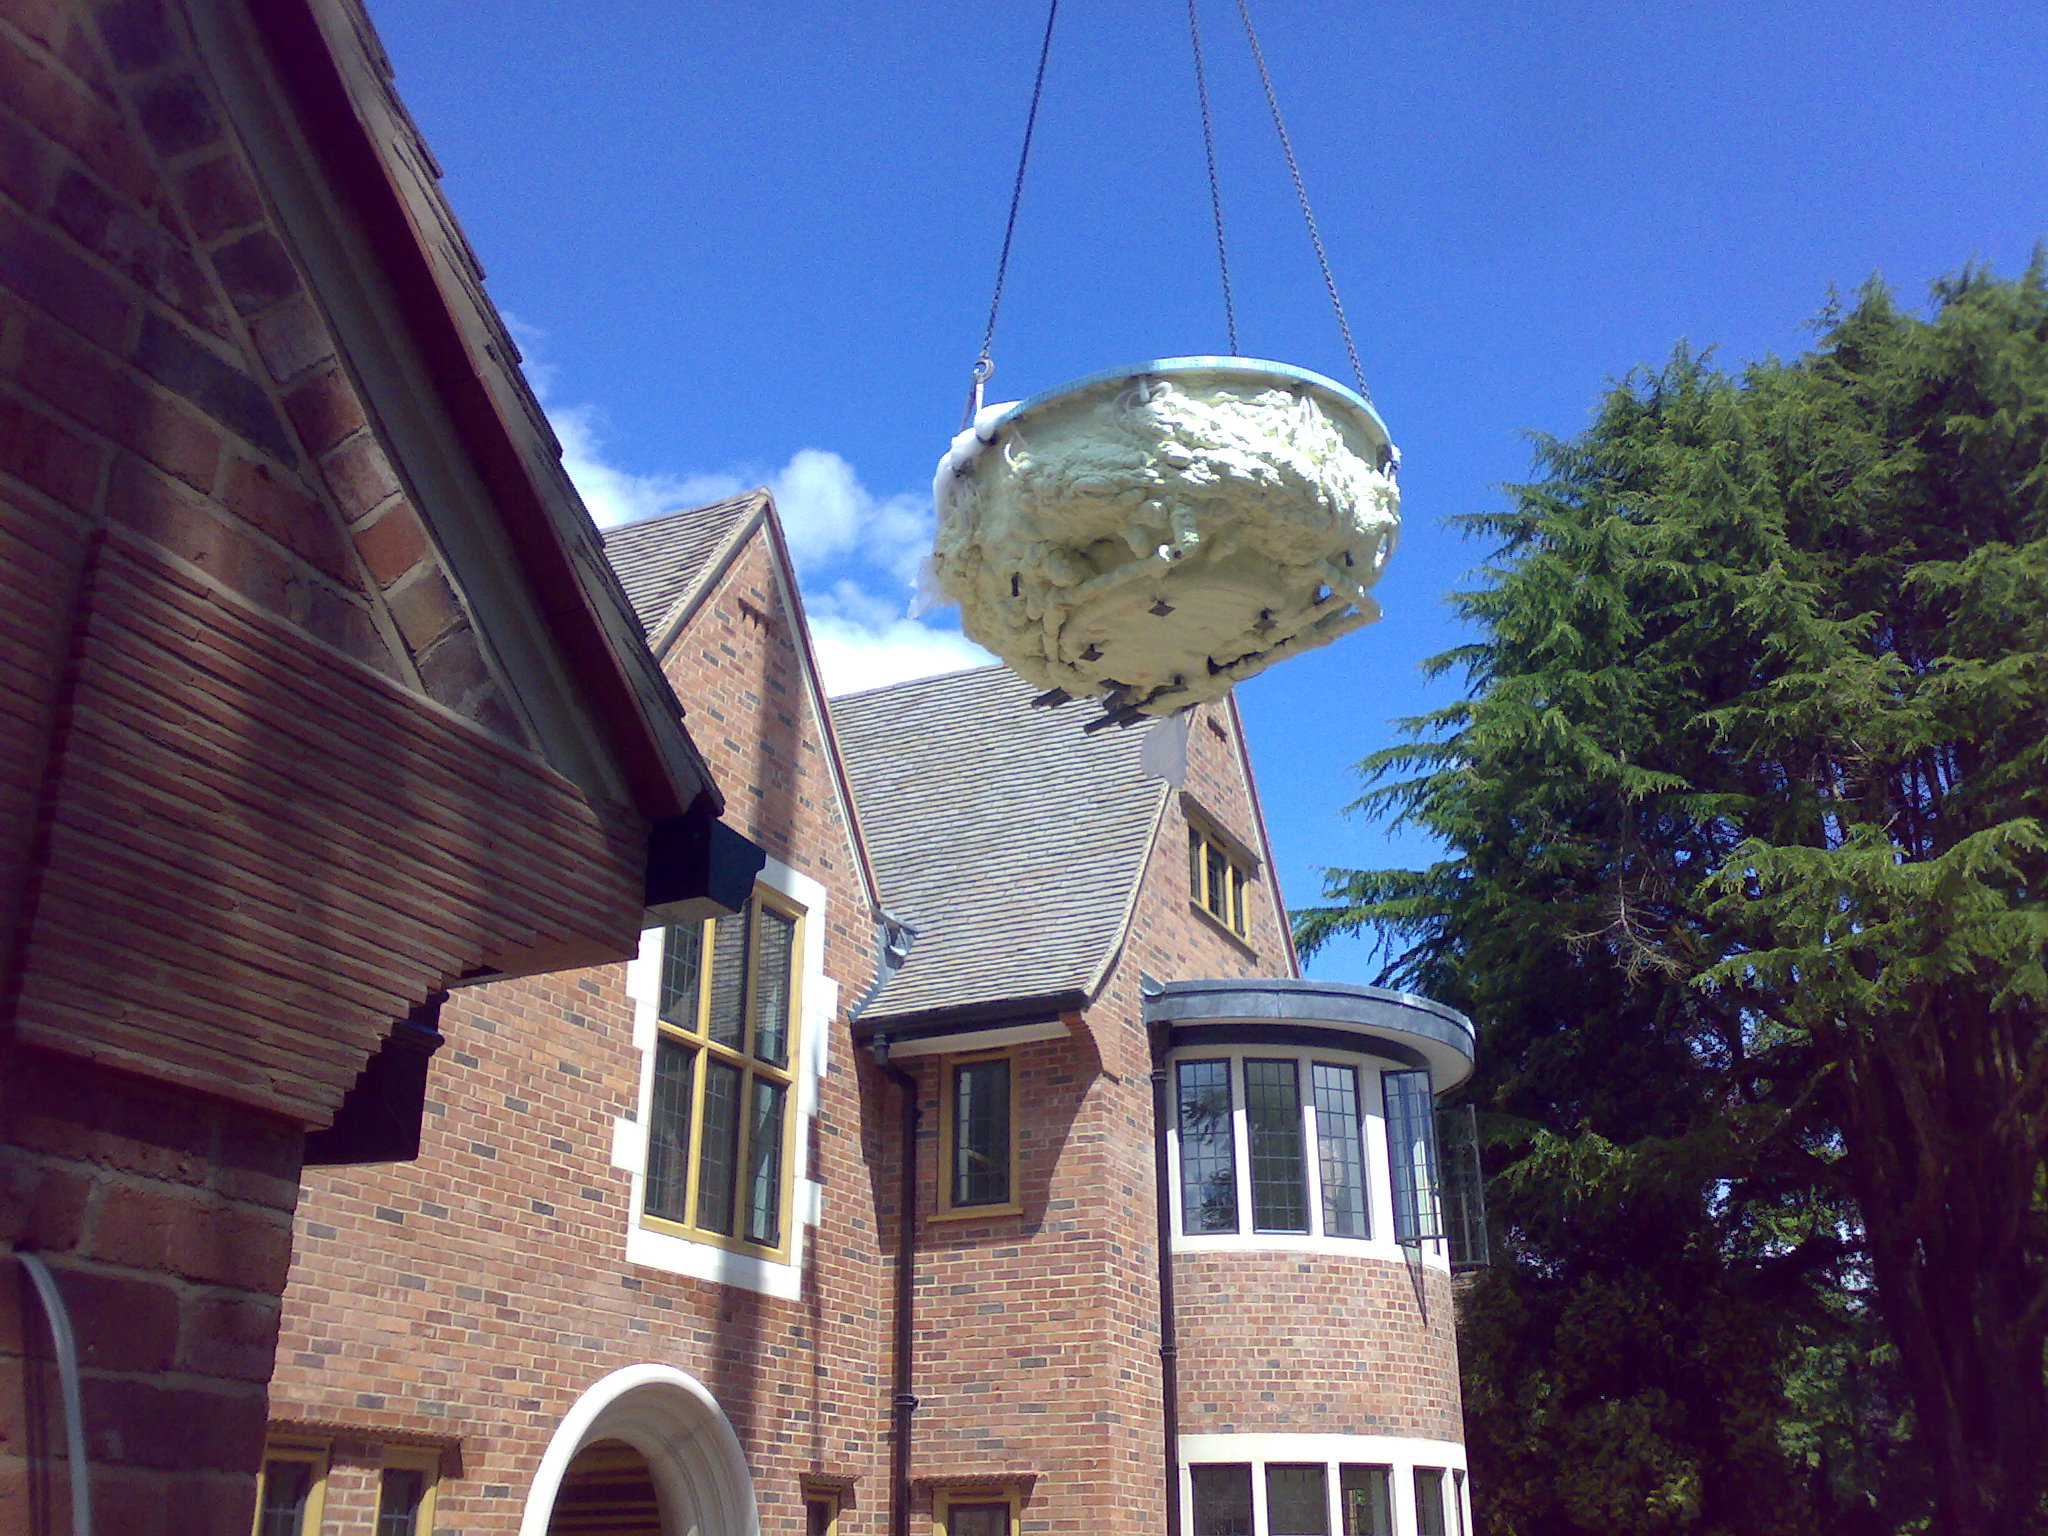 Spa being craned over house to reach pool hall